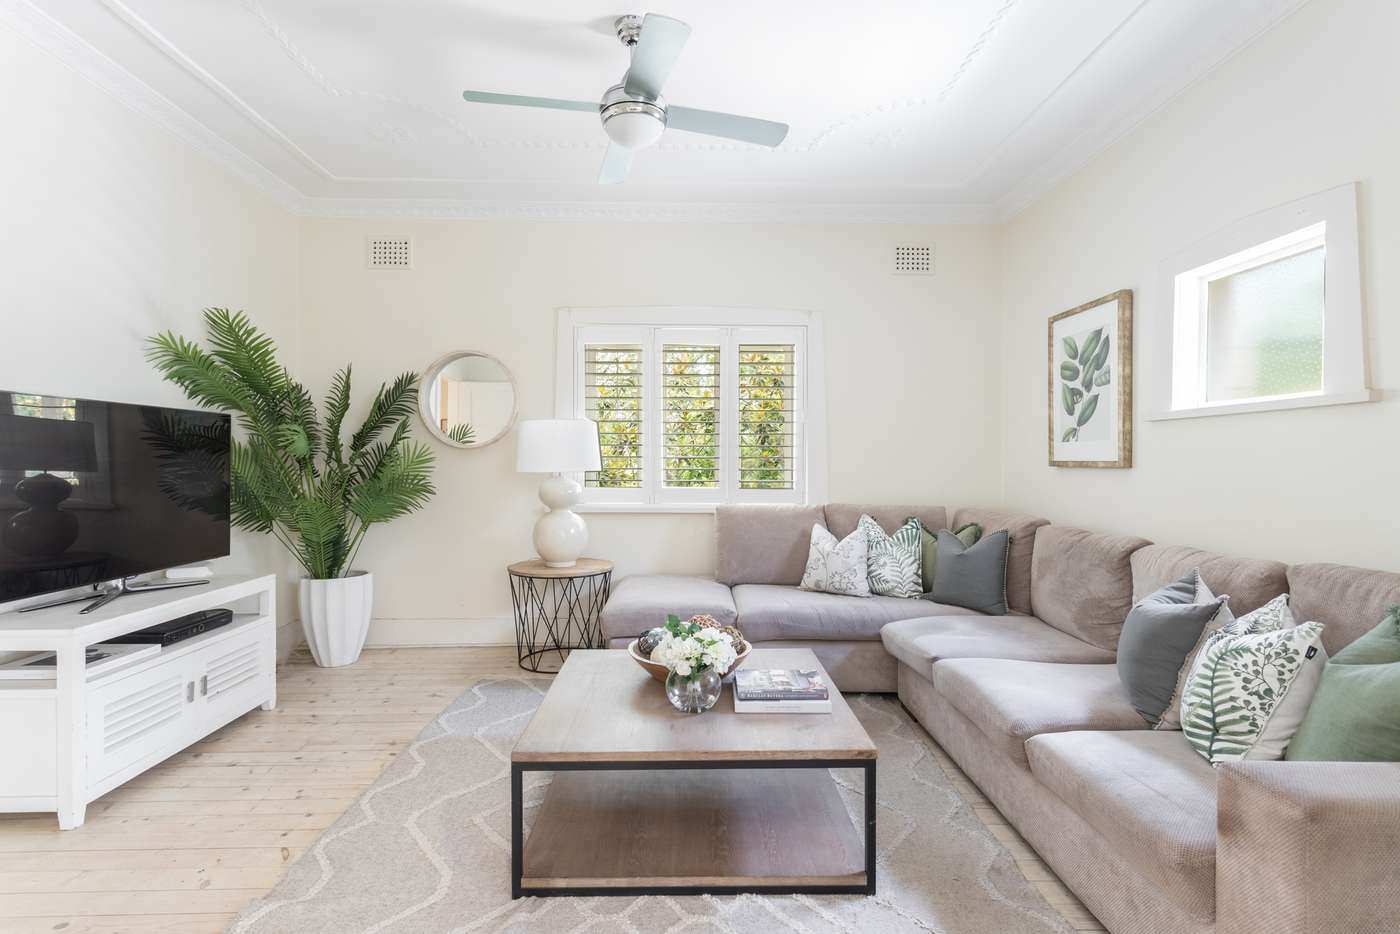 Fifth view of Homely house listing, 48 Royalist Road, Mosman NSW 2088